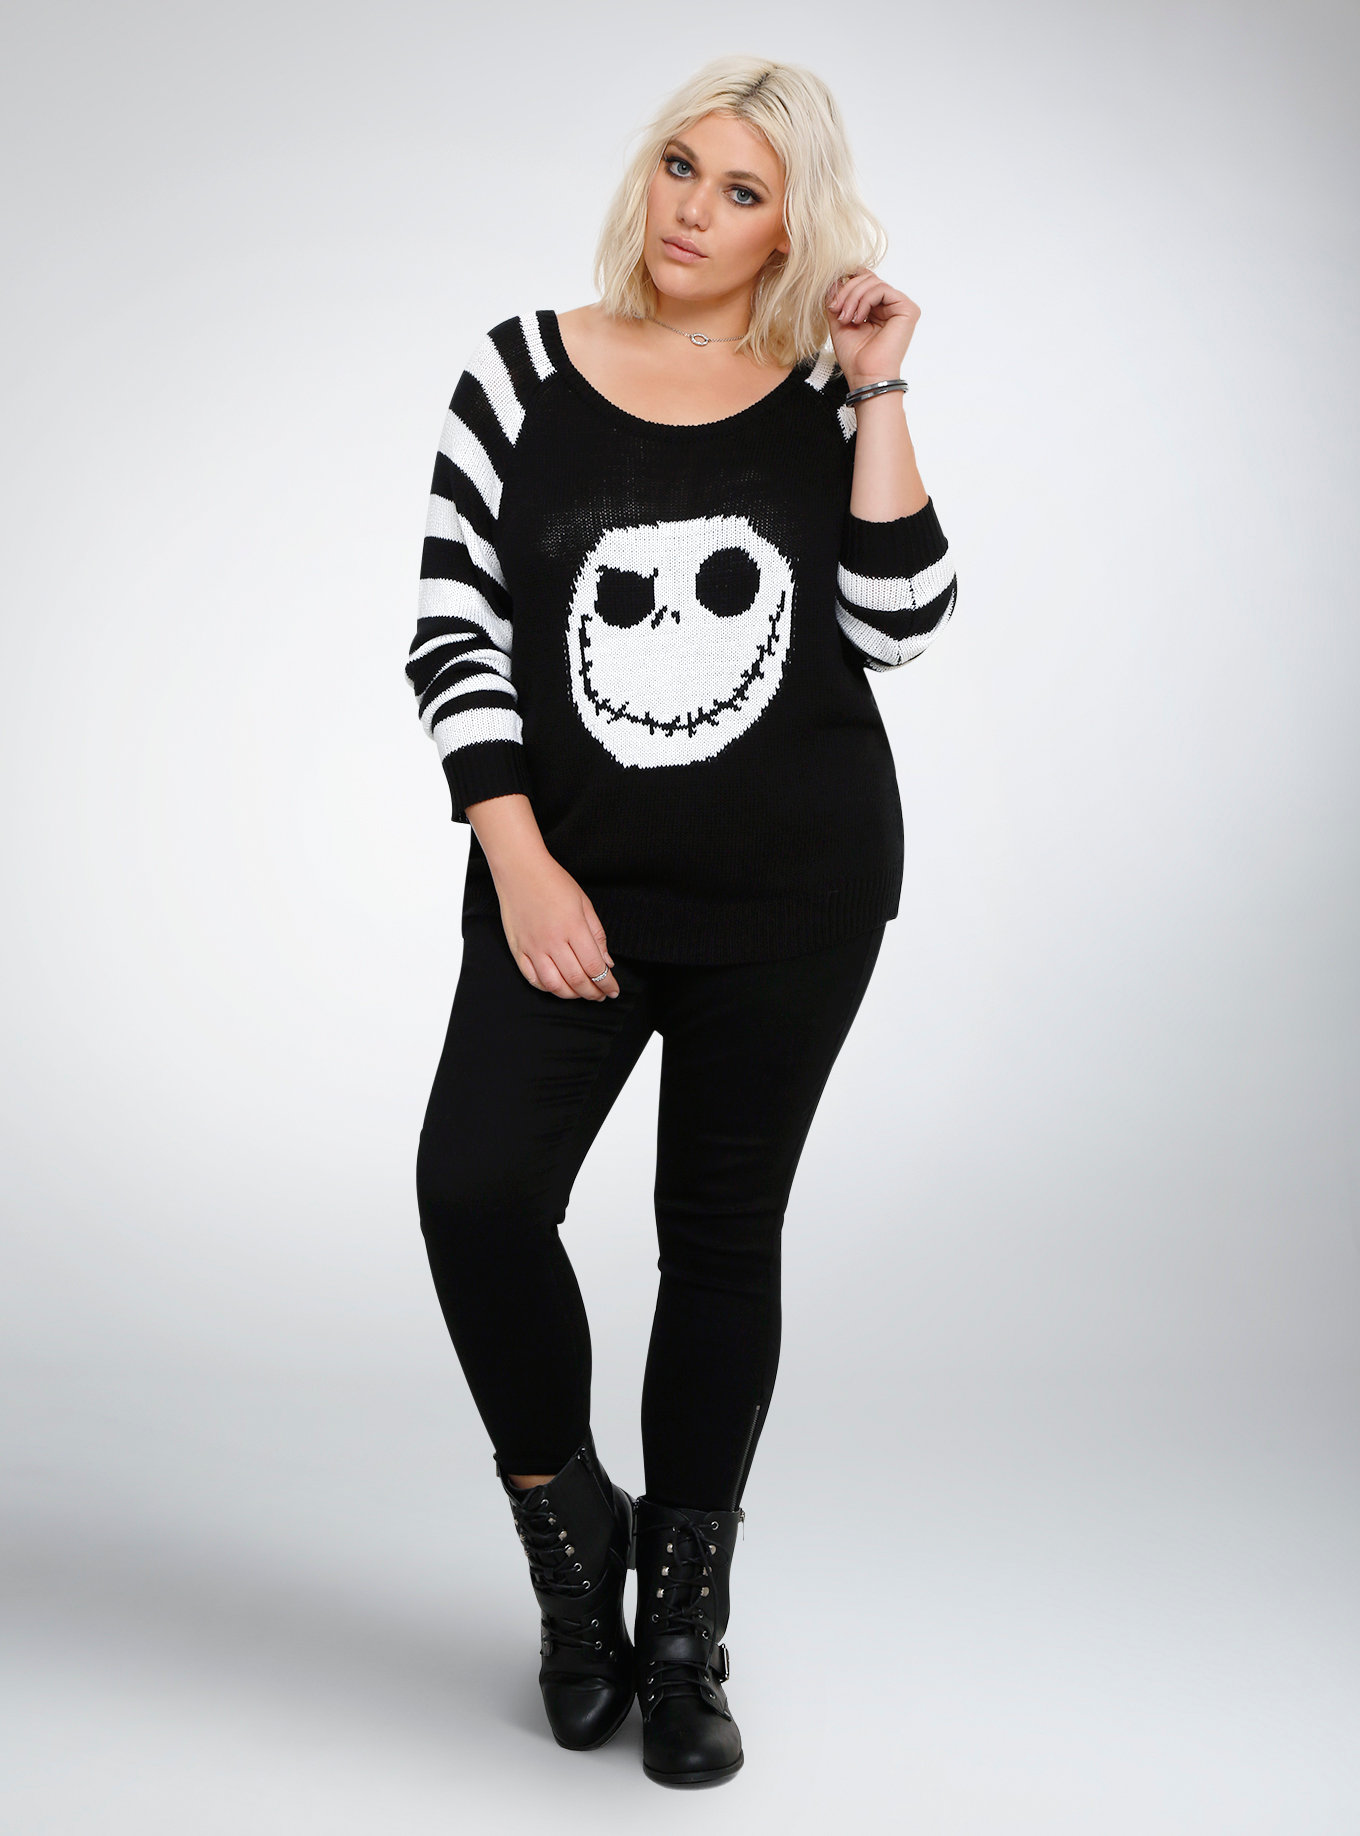 7 awesome Christmas sweaters that will flatter any and every body ...